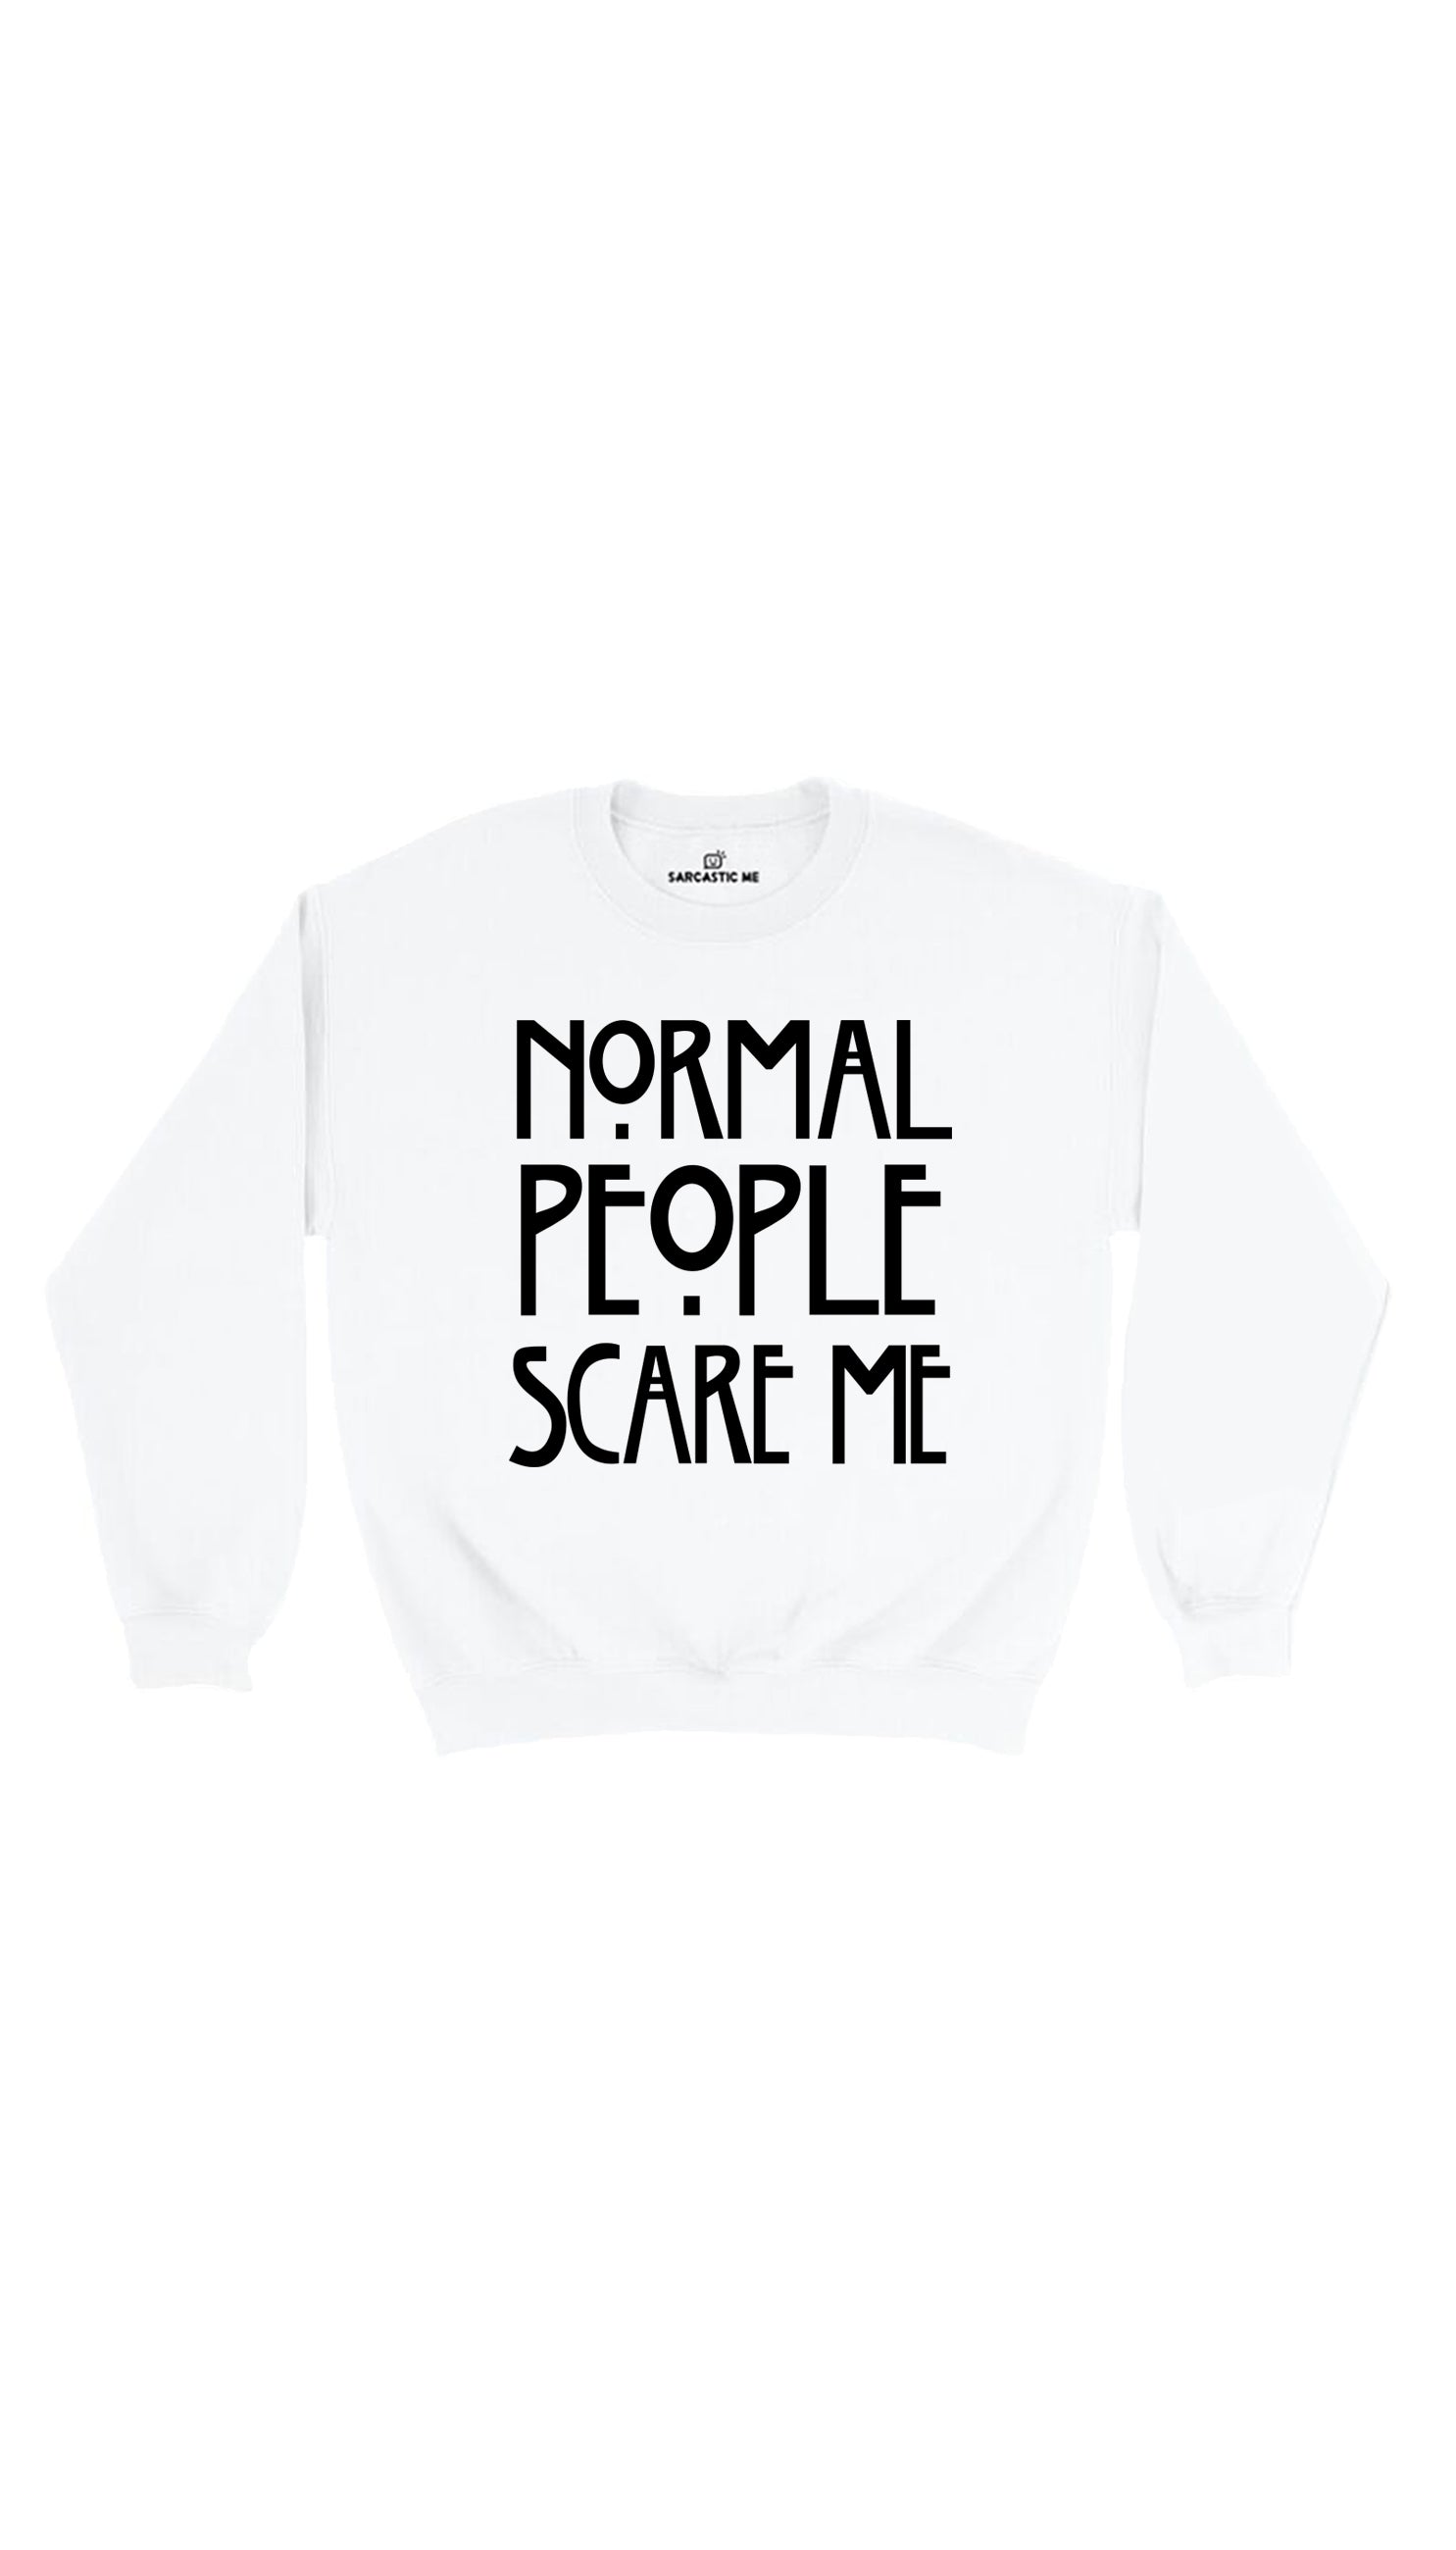 Normal People Scare Me White Unisex Pullover Sweatshirt | Sarcastic Me